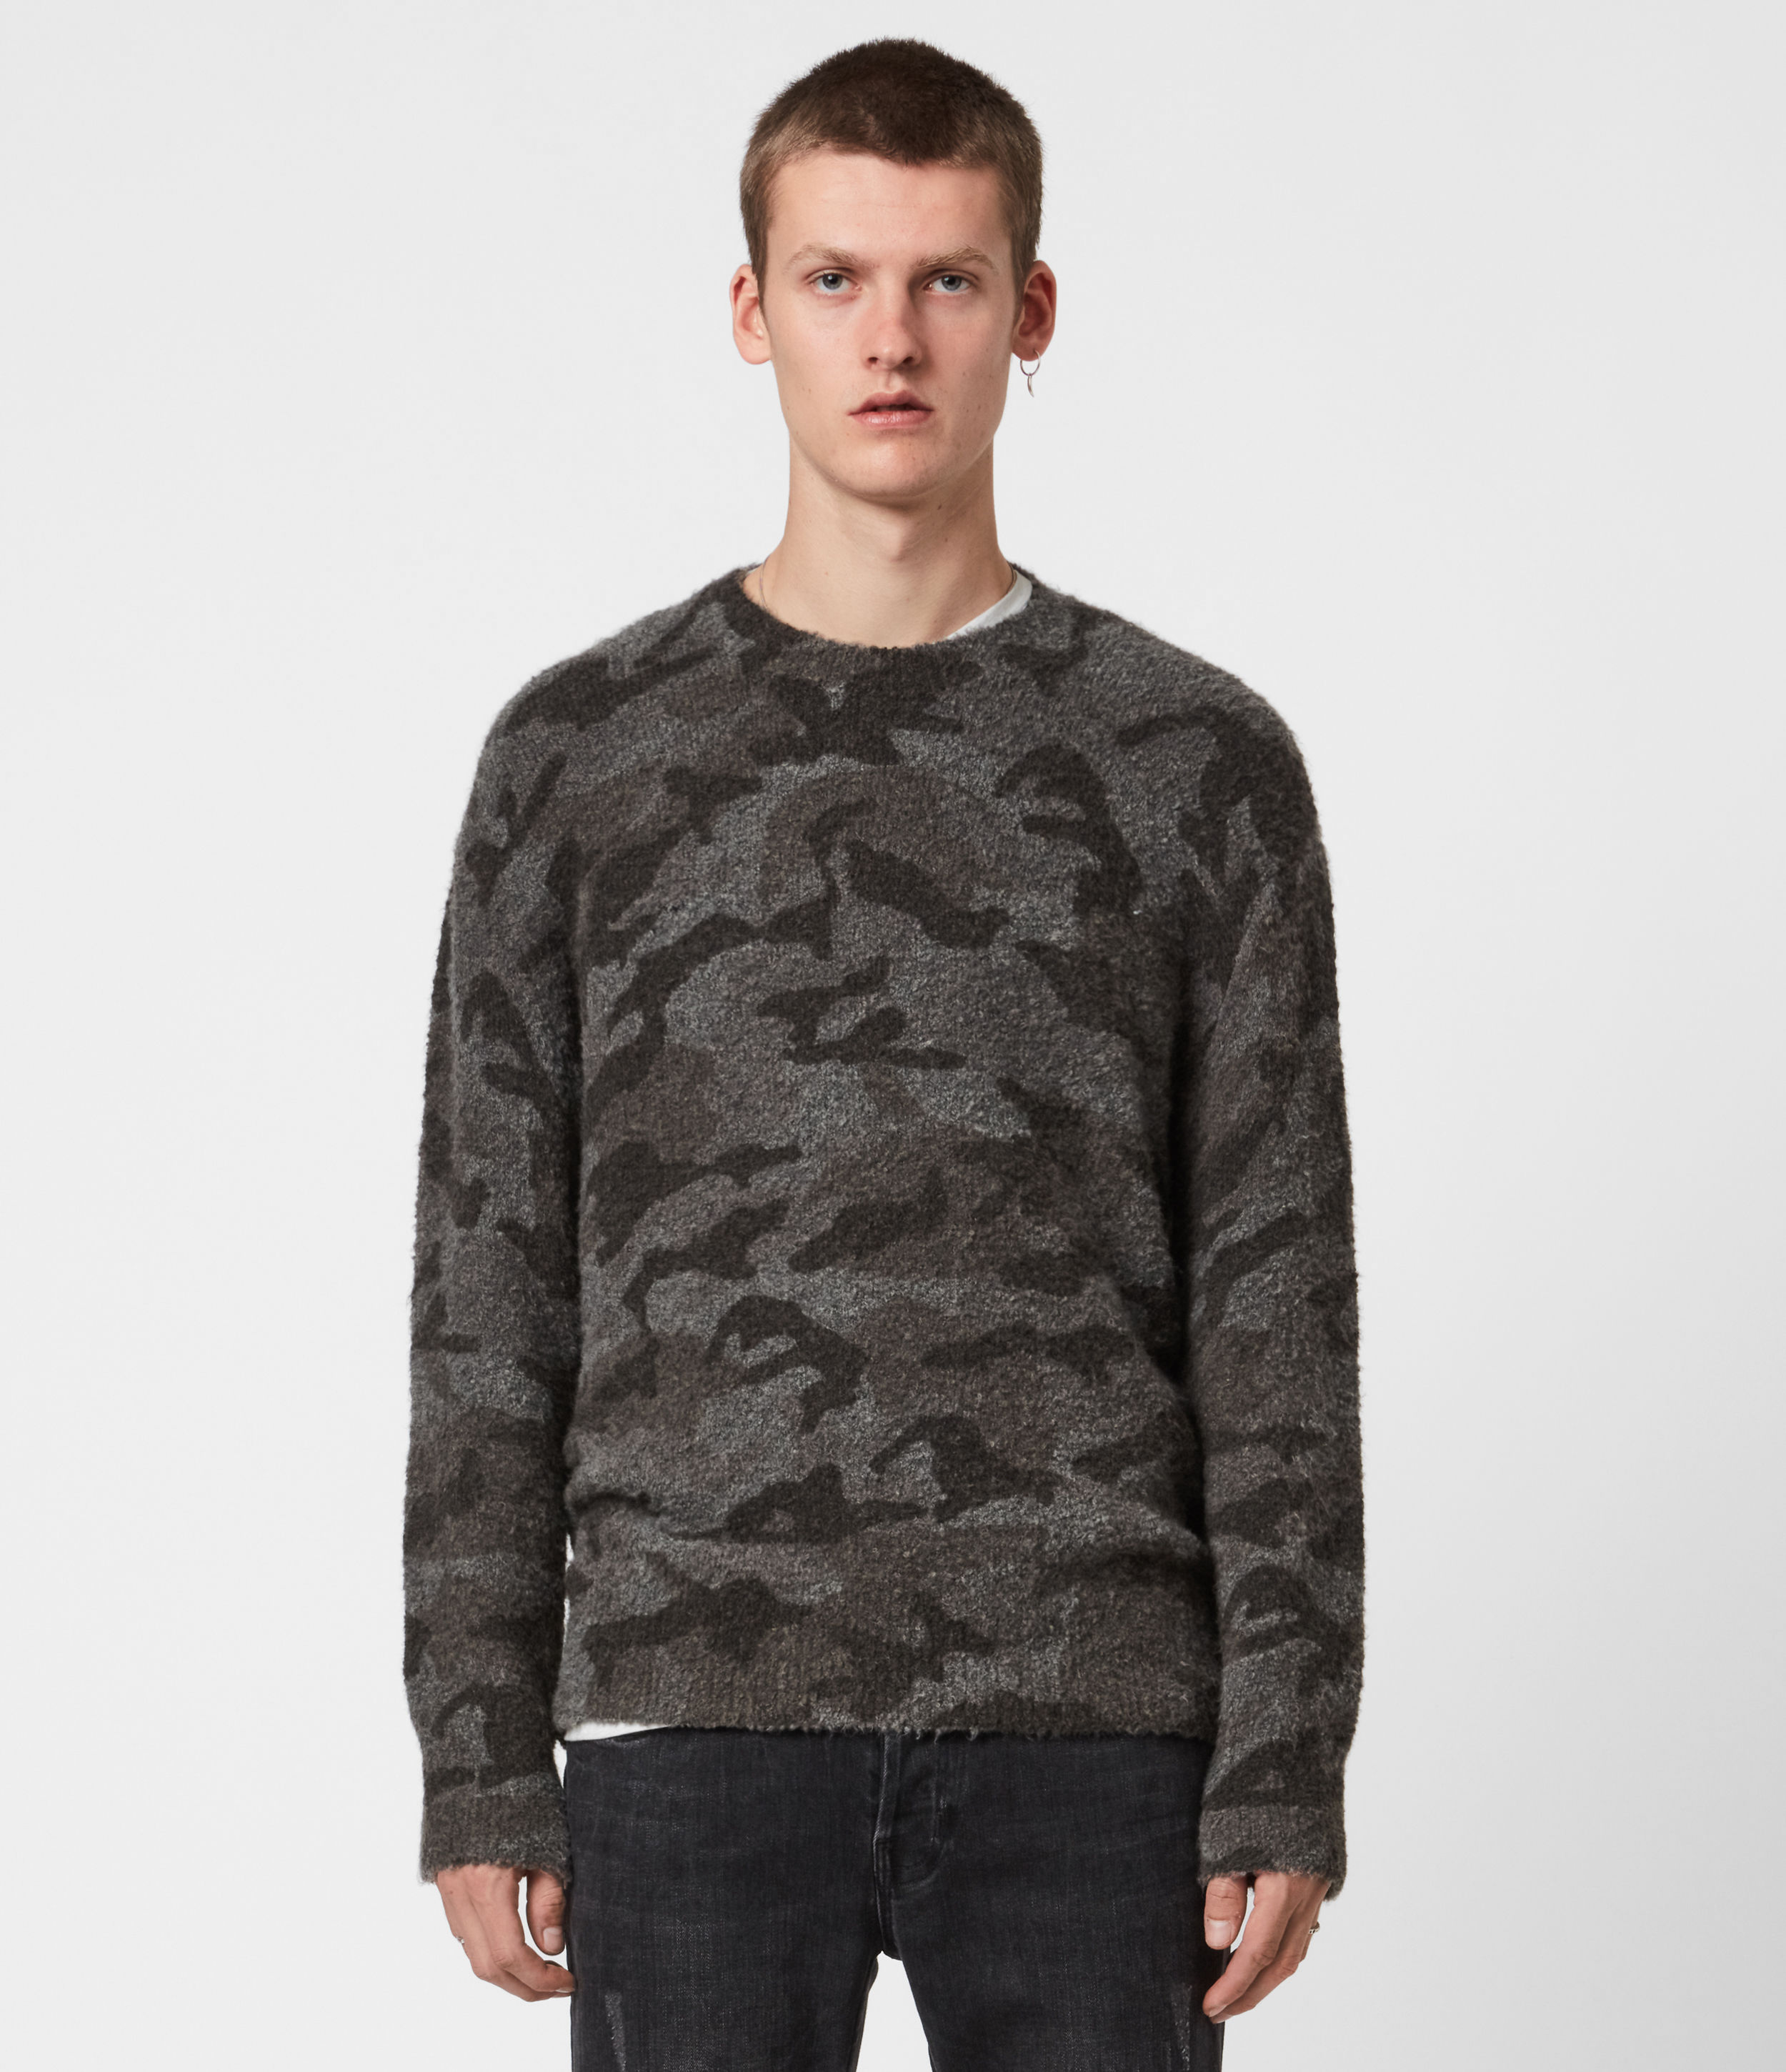 AllSaints Men's Wool Camouflage Stealth Crew Jumper, Grey and Brown, Size: XL